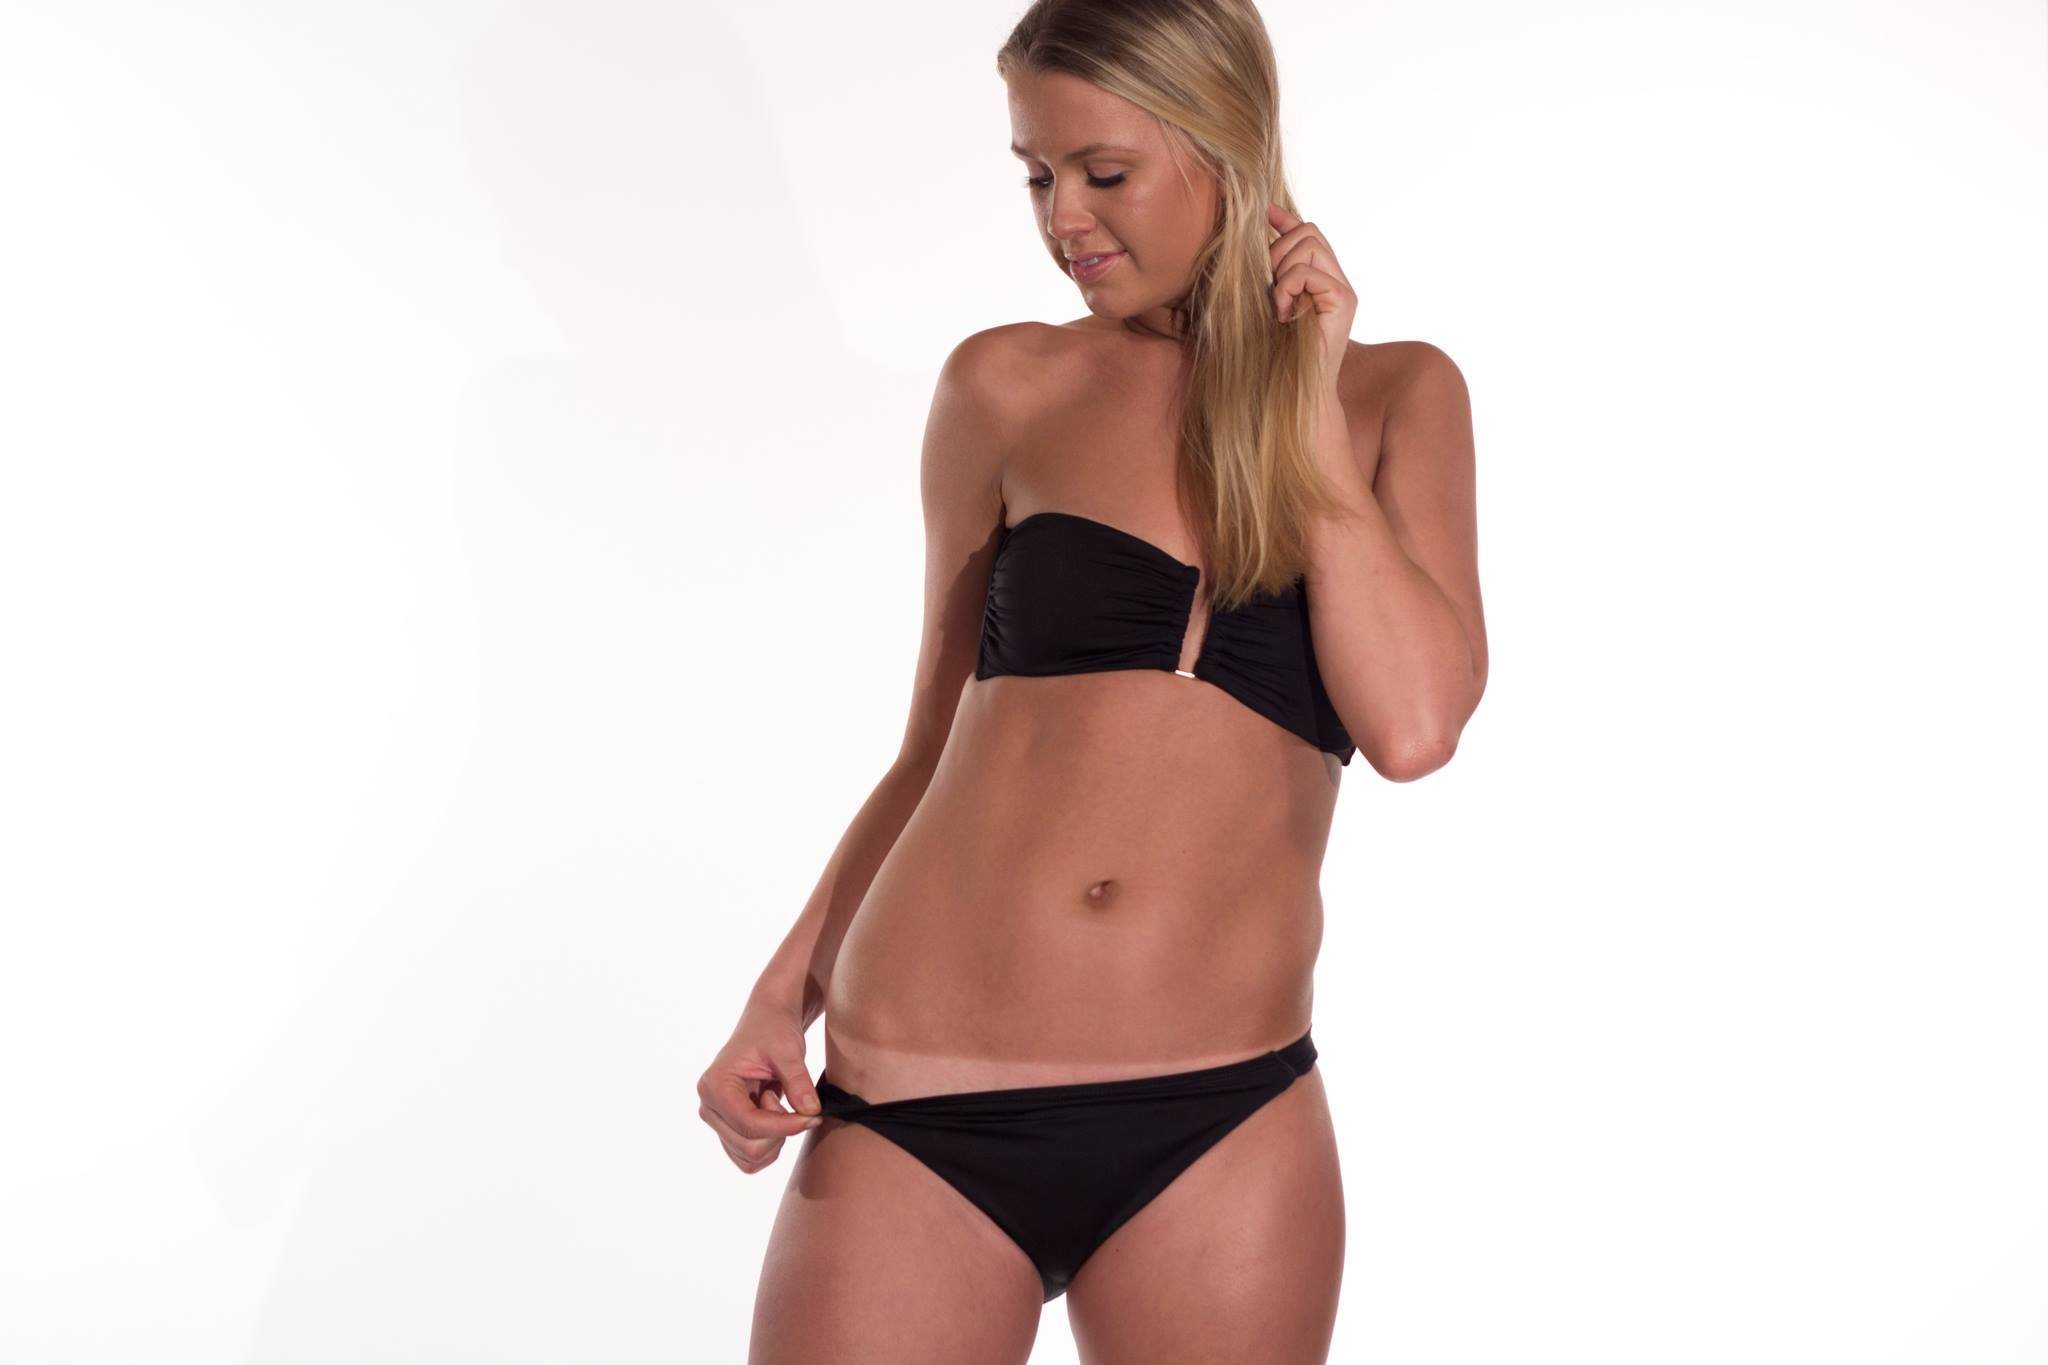 NG Spray Tanning Photo